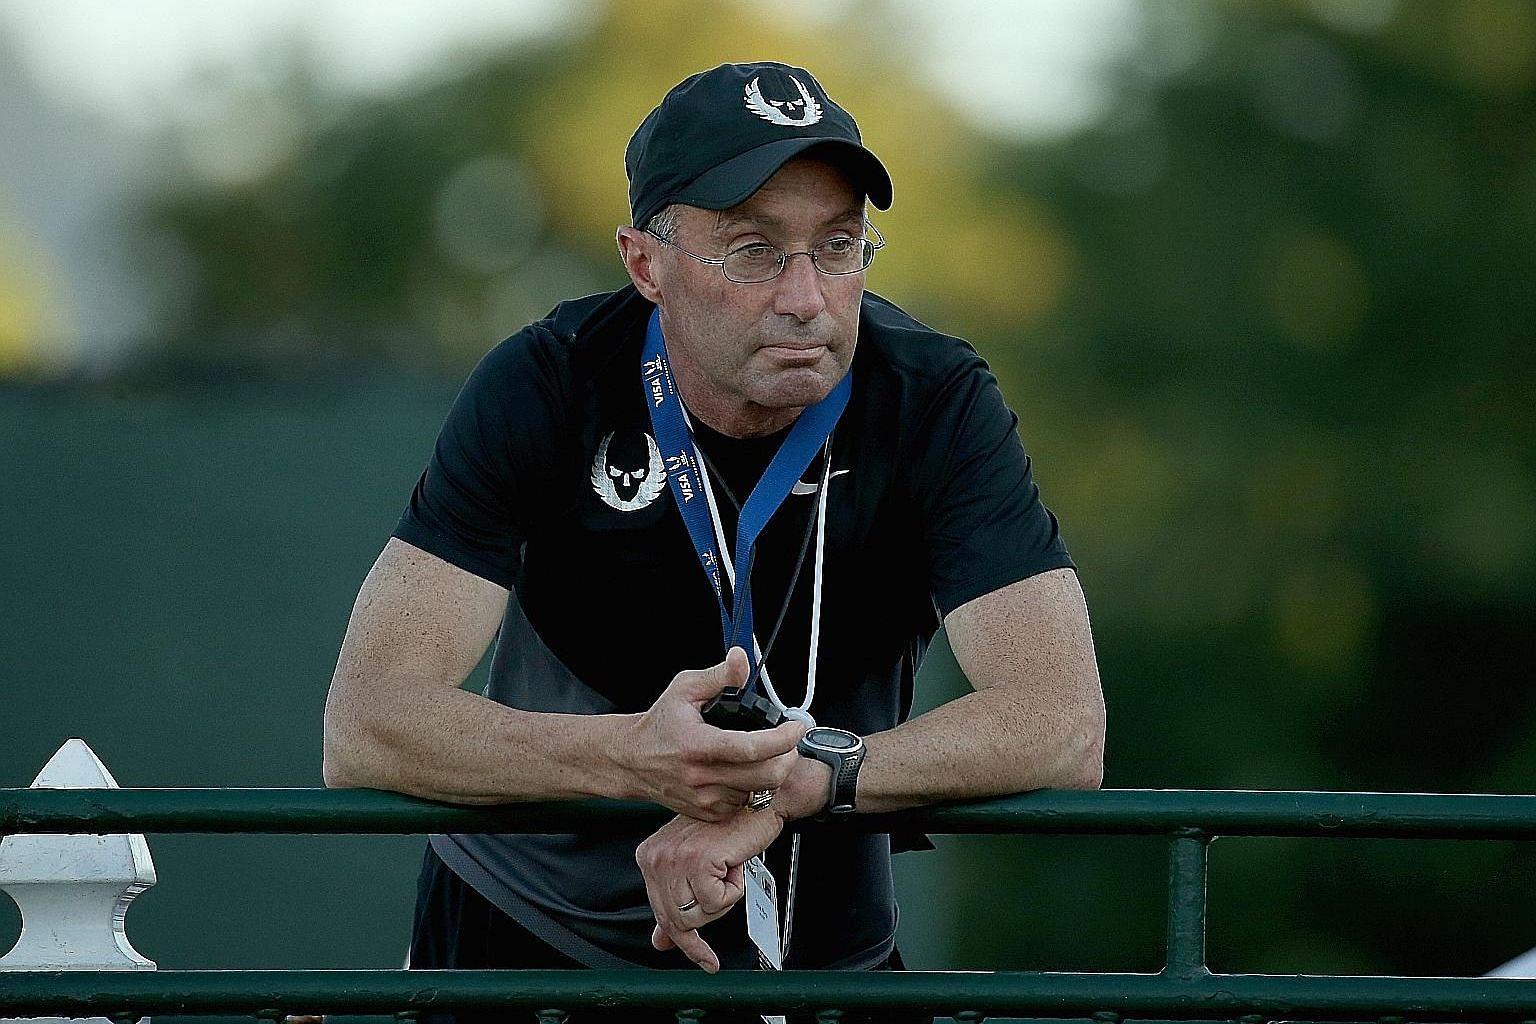 The shocking details from the court this week included the claim that Alberto Salazar (above) used his two adult sons as guinea pigs in an experiment to establish how much testosterone gel could be applied without breaching the legal limit allowed in